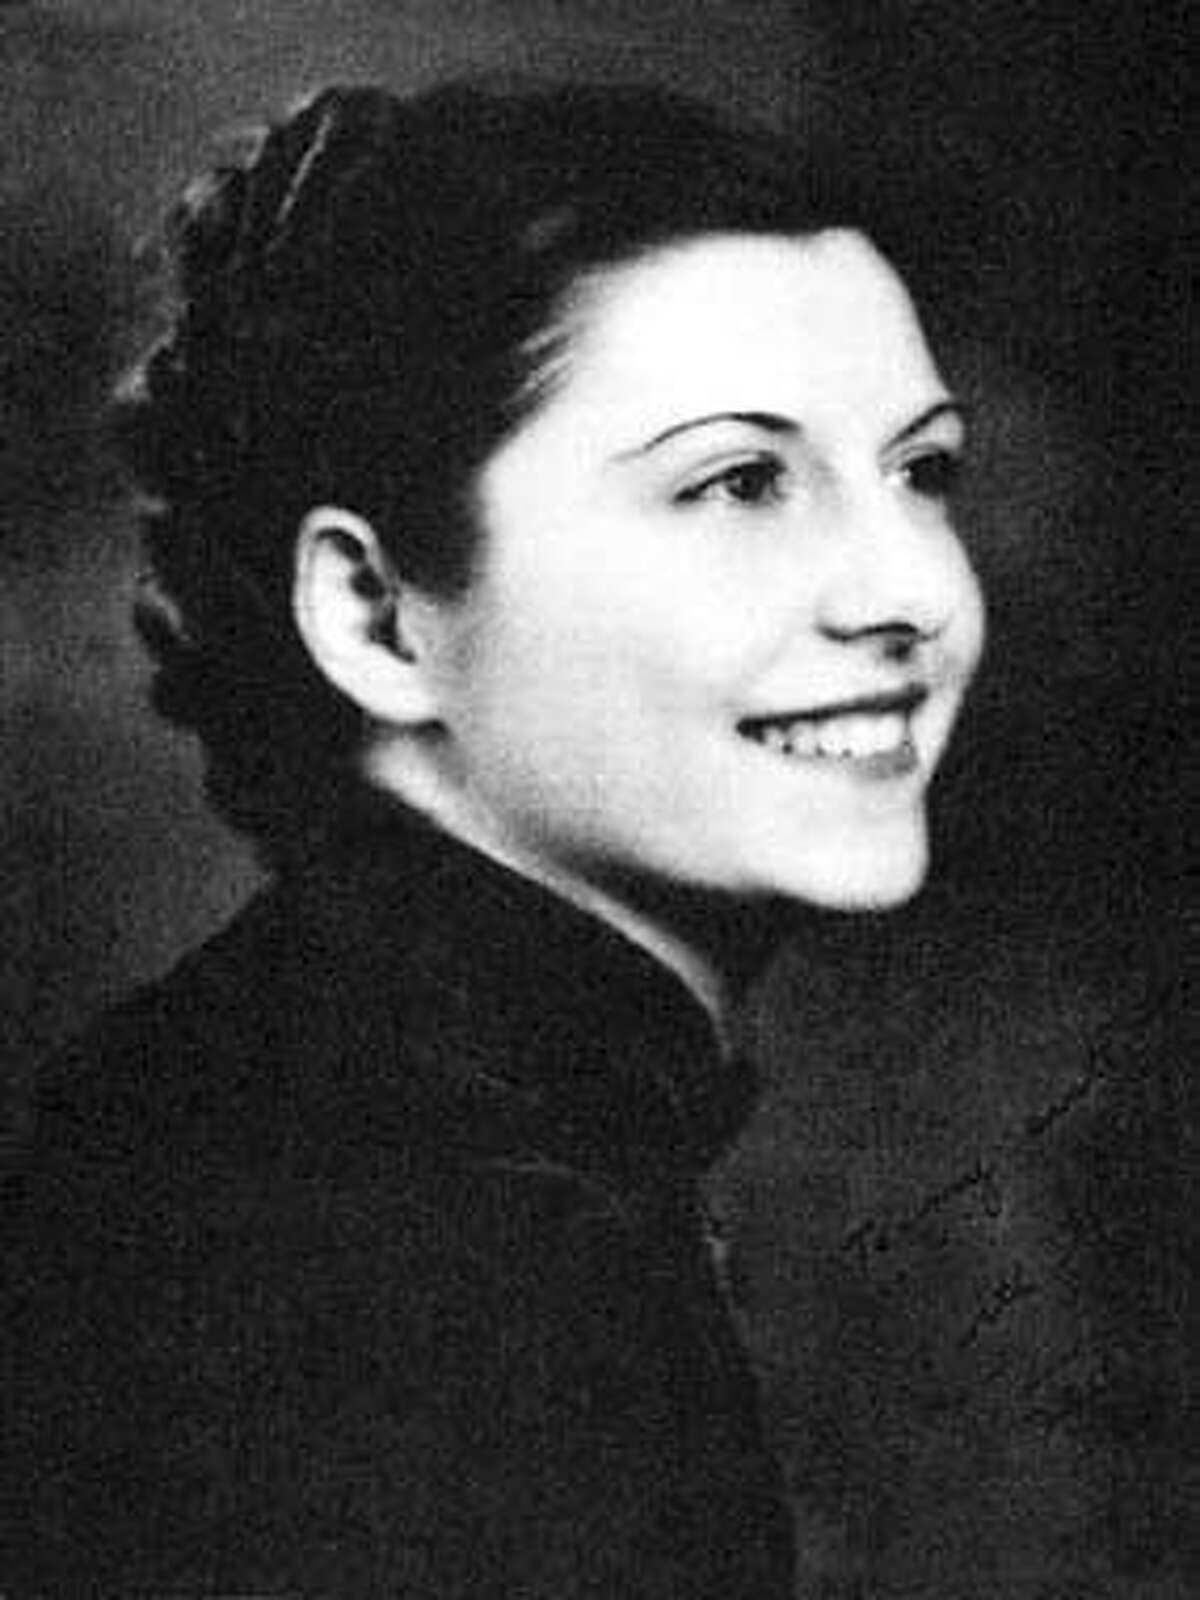 Italia Coppola, mother of Francis Ford Coppola, dies at 91. Italia at age 30. / handout